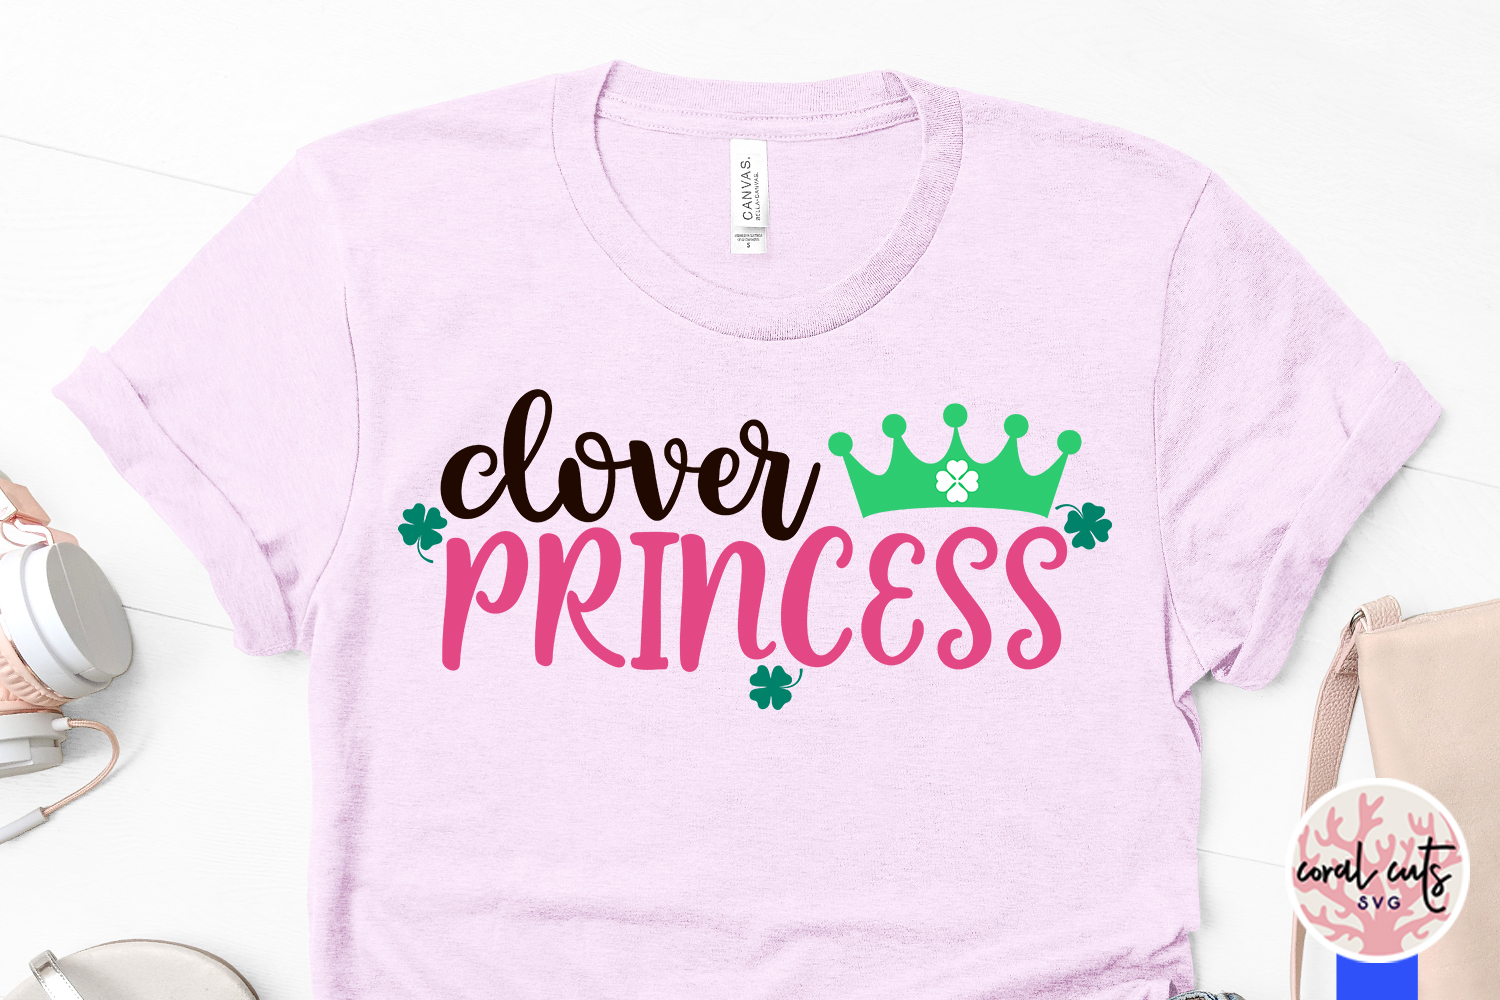 Clover princess - St. Patrick's Day SVG EPS DXF PNG example image 3